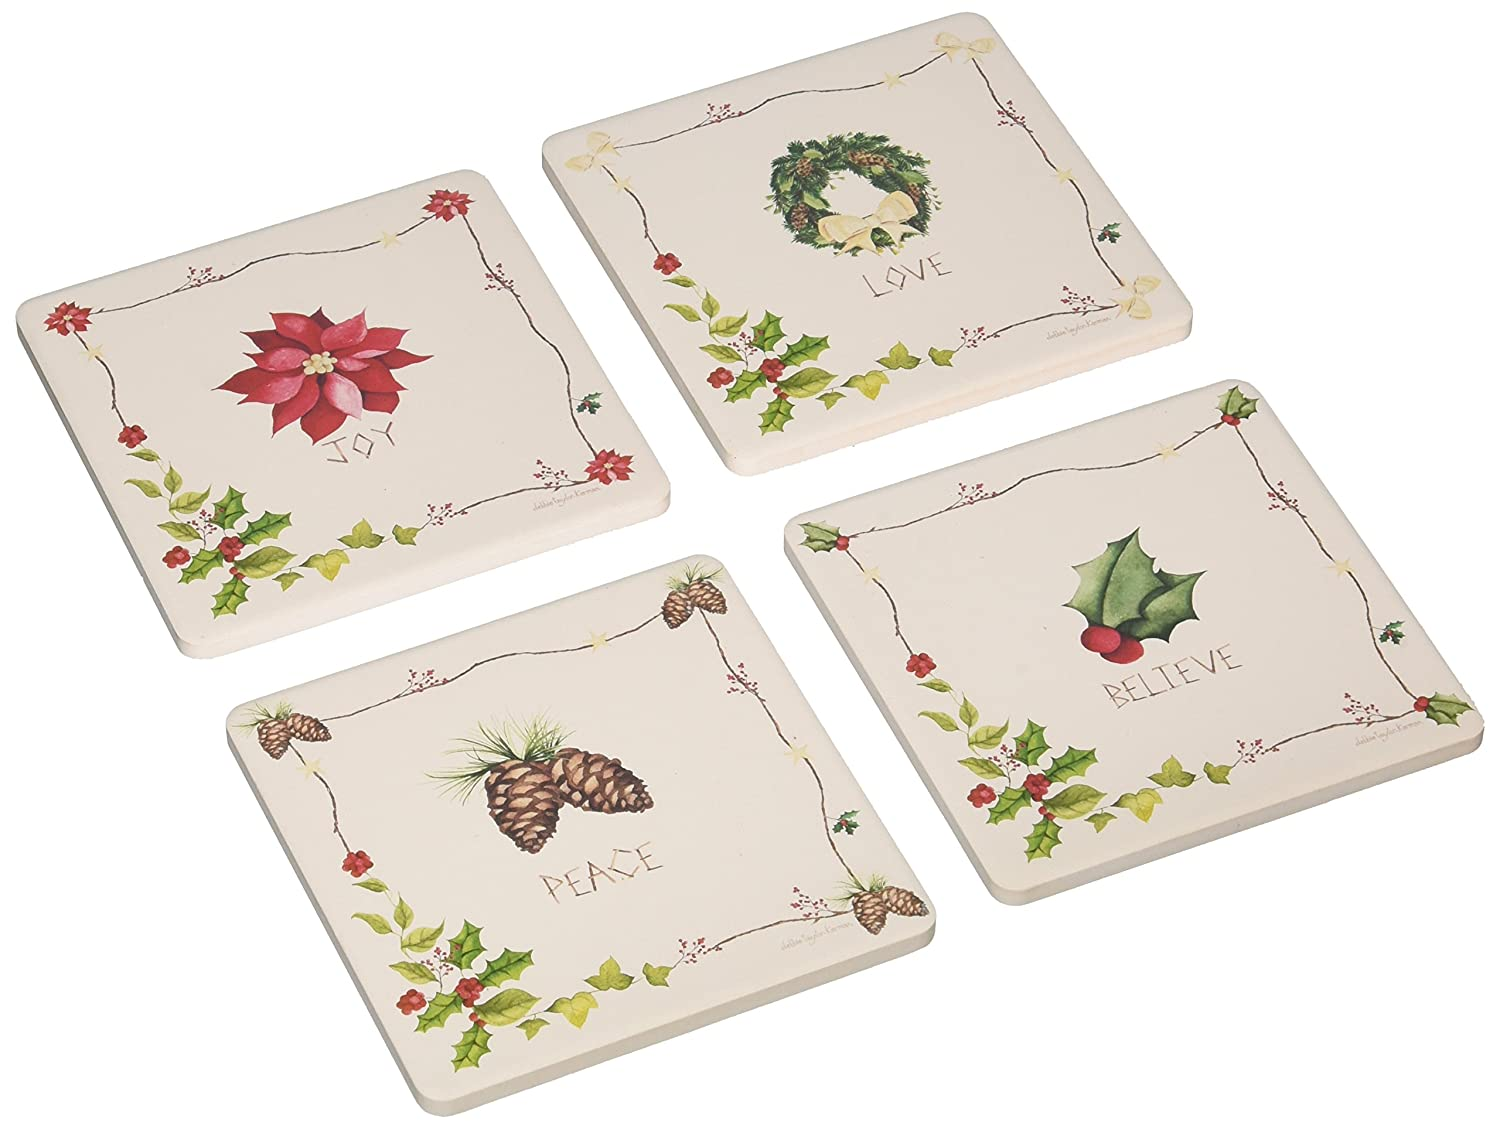 CoasterStone AS8760 Absorbent Coasters, 4-1/4-Inch,'Rustic Christmas', Set of 4 Rustic Christmas